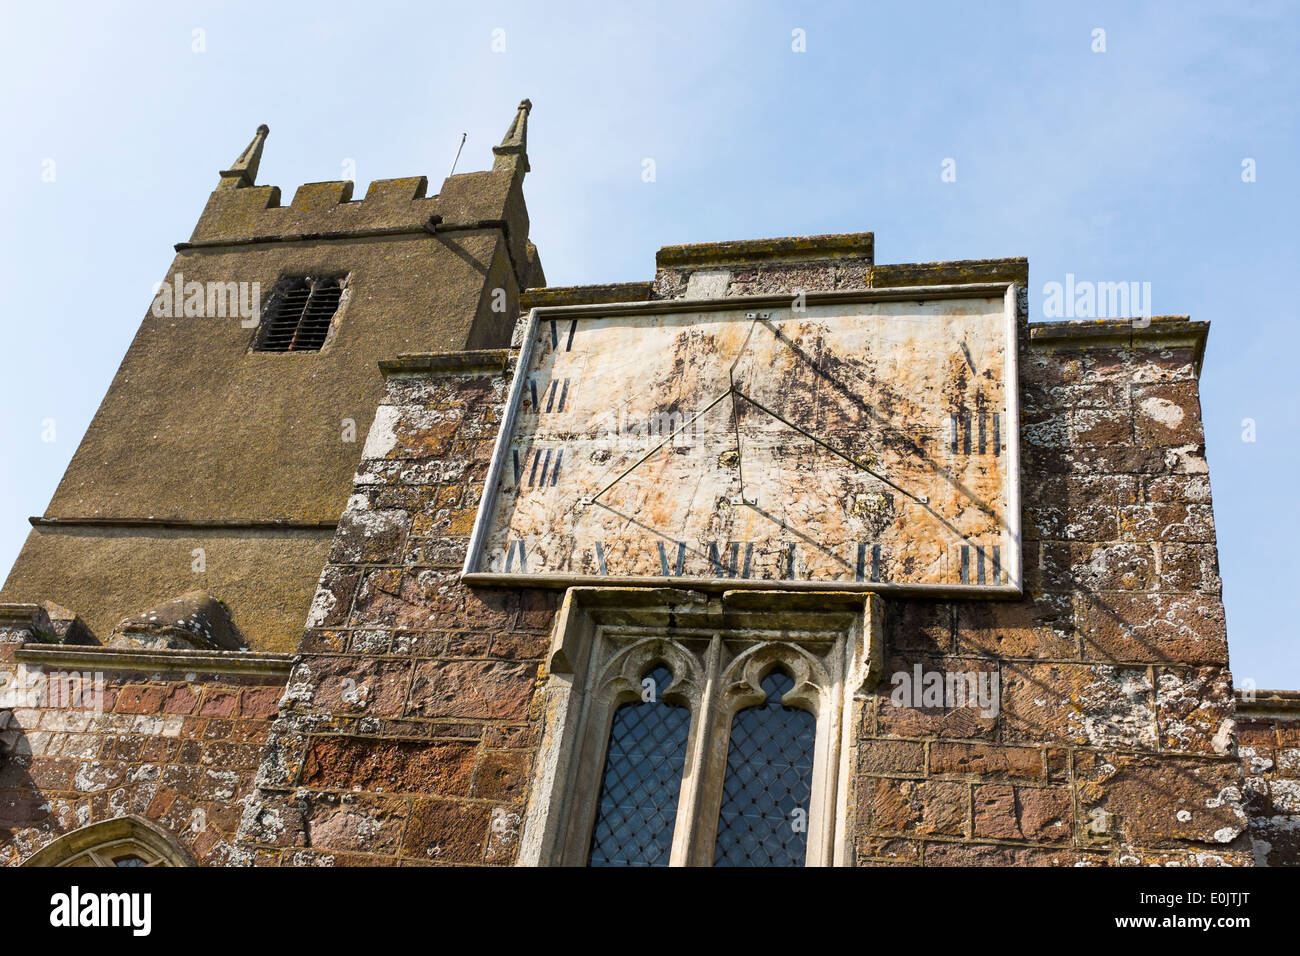 Sundial on the front of St Matthew's Church, Cheriton Fitzpaine, Devon, United Kingdom - Stock Image